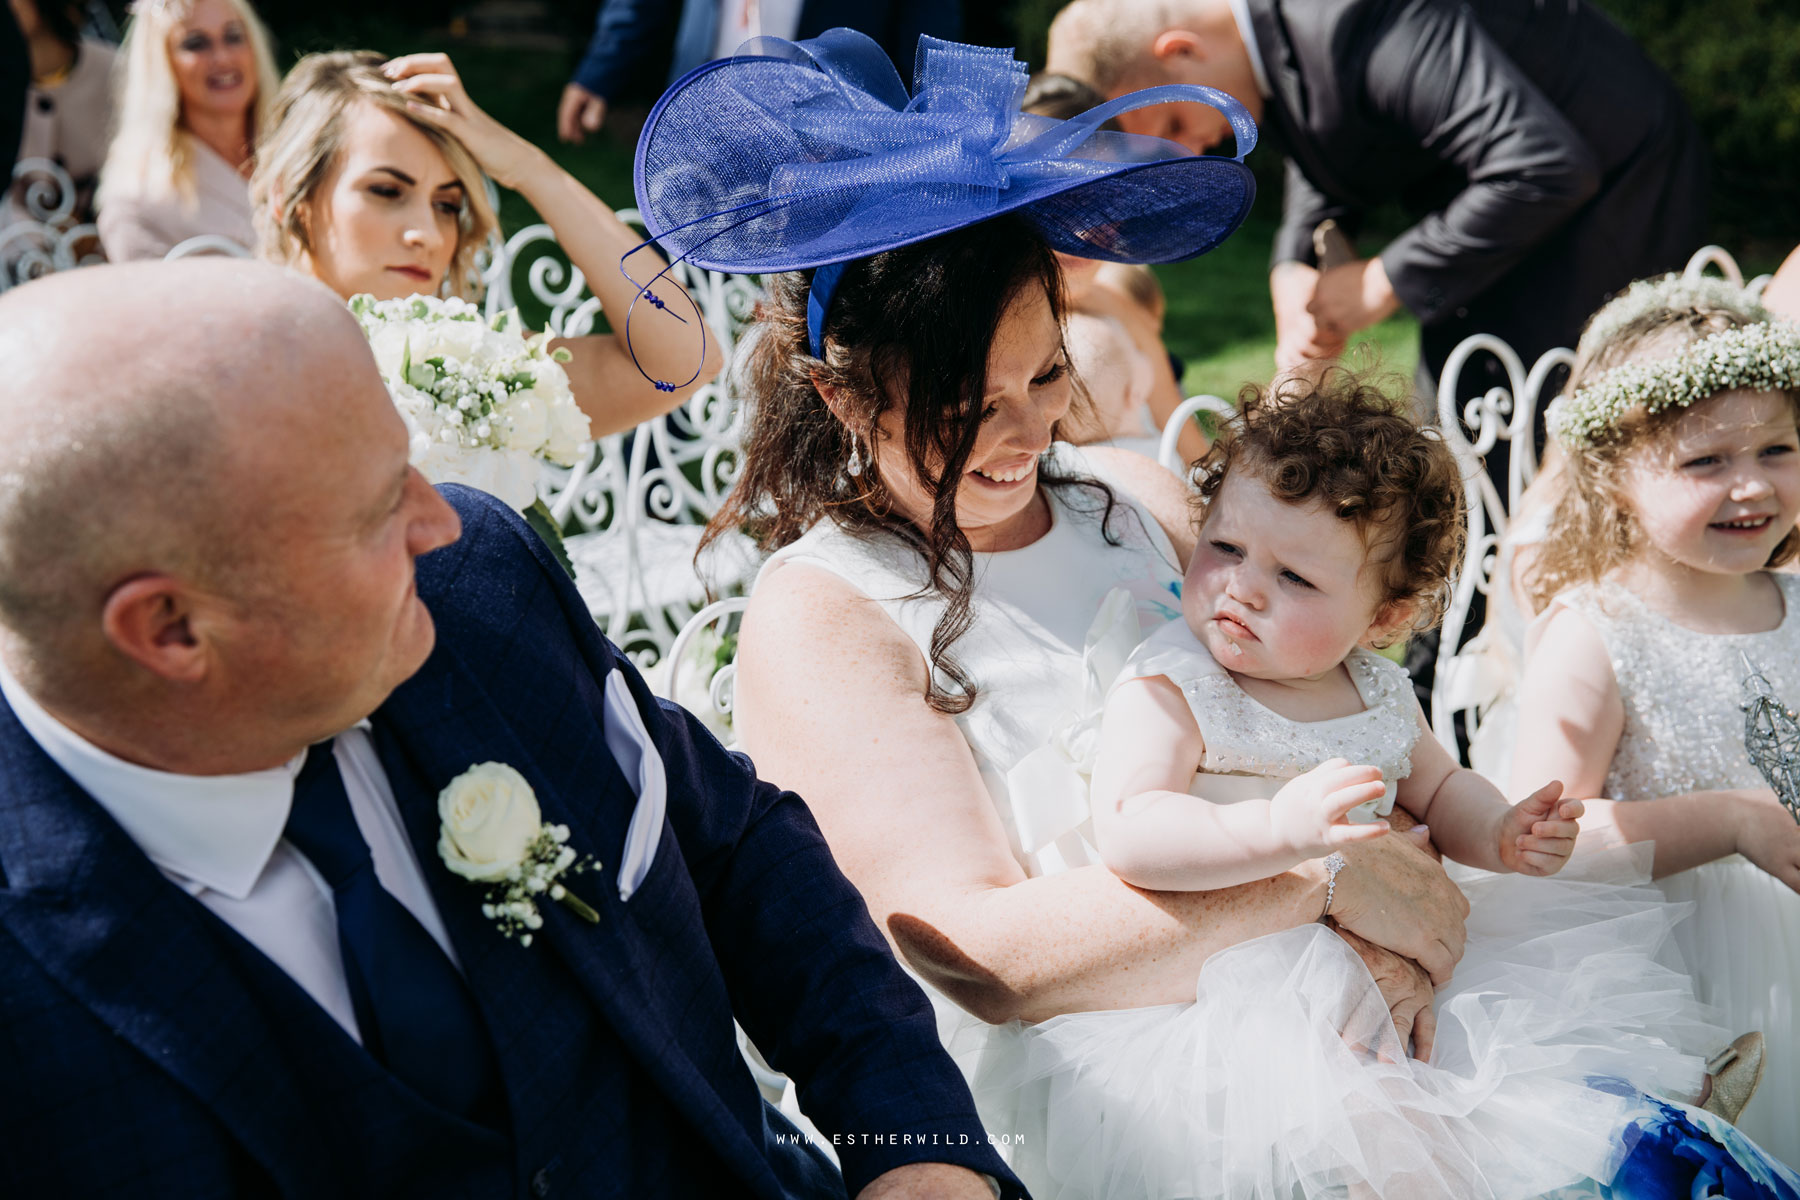 Lynford_Hall_Wedding_Thetford_Mundford_Esther_Wild_Photographer_IMG_1463.jpg